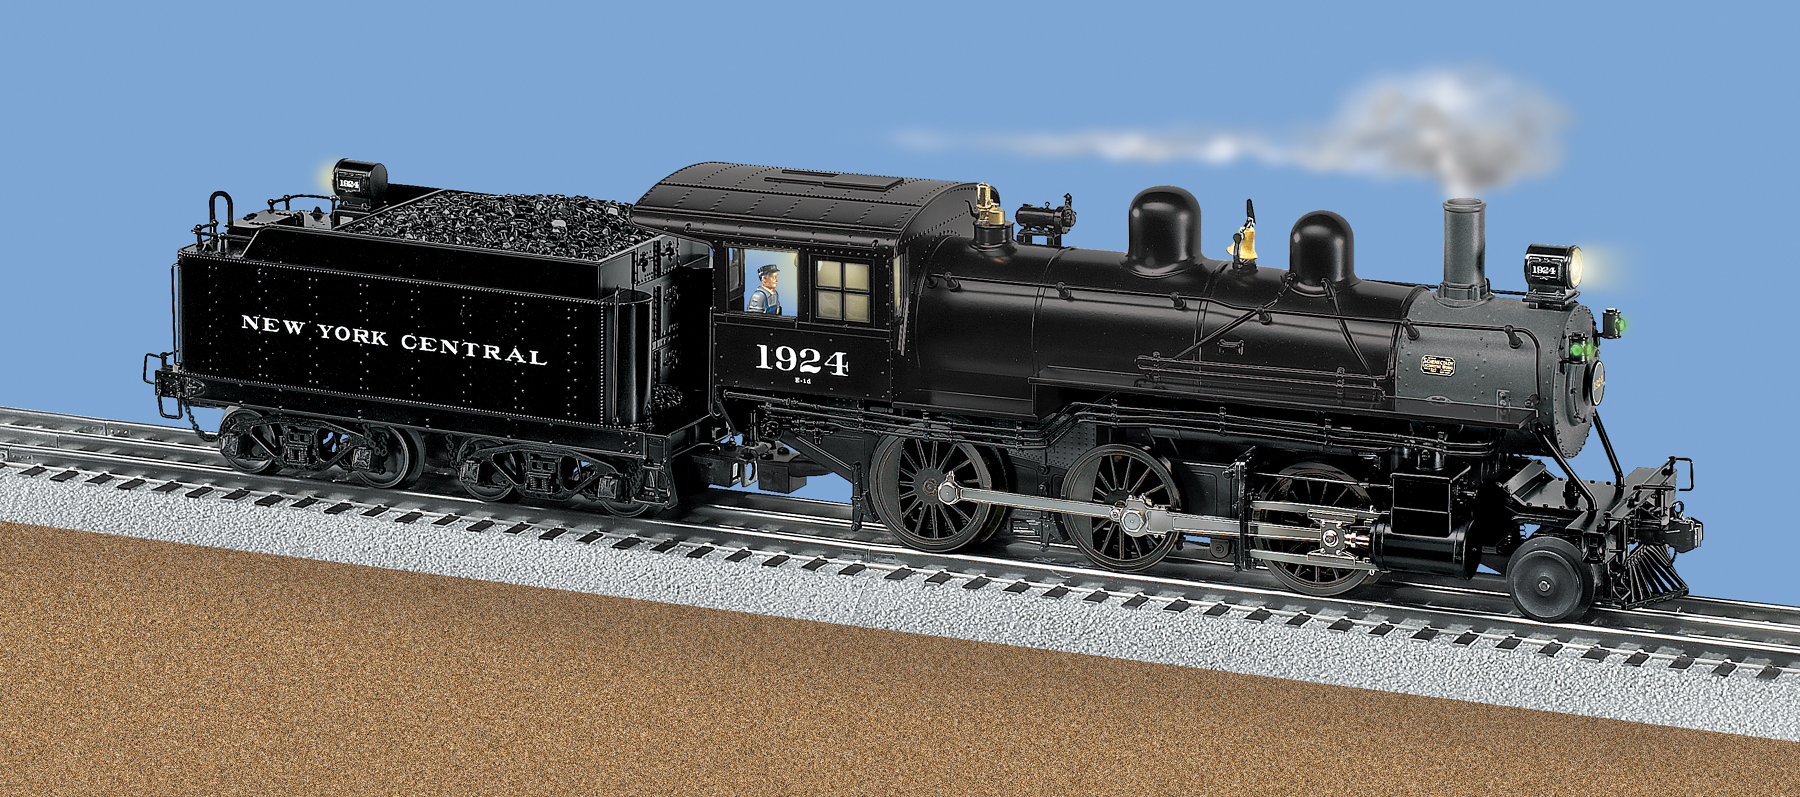 s3 amazonaws com lionel initial assets products pr lionel fast track layout designs 1962 lionel train motor wiring diagram [ 1800 x 797 Pixel ]